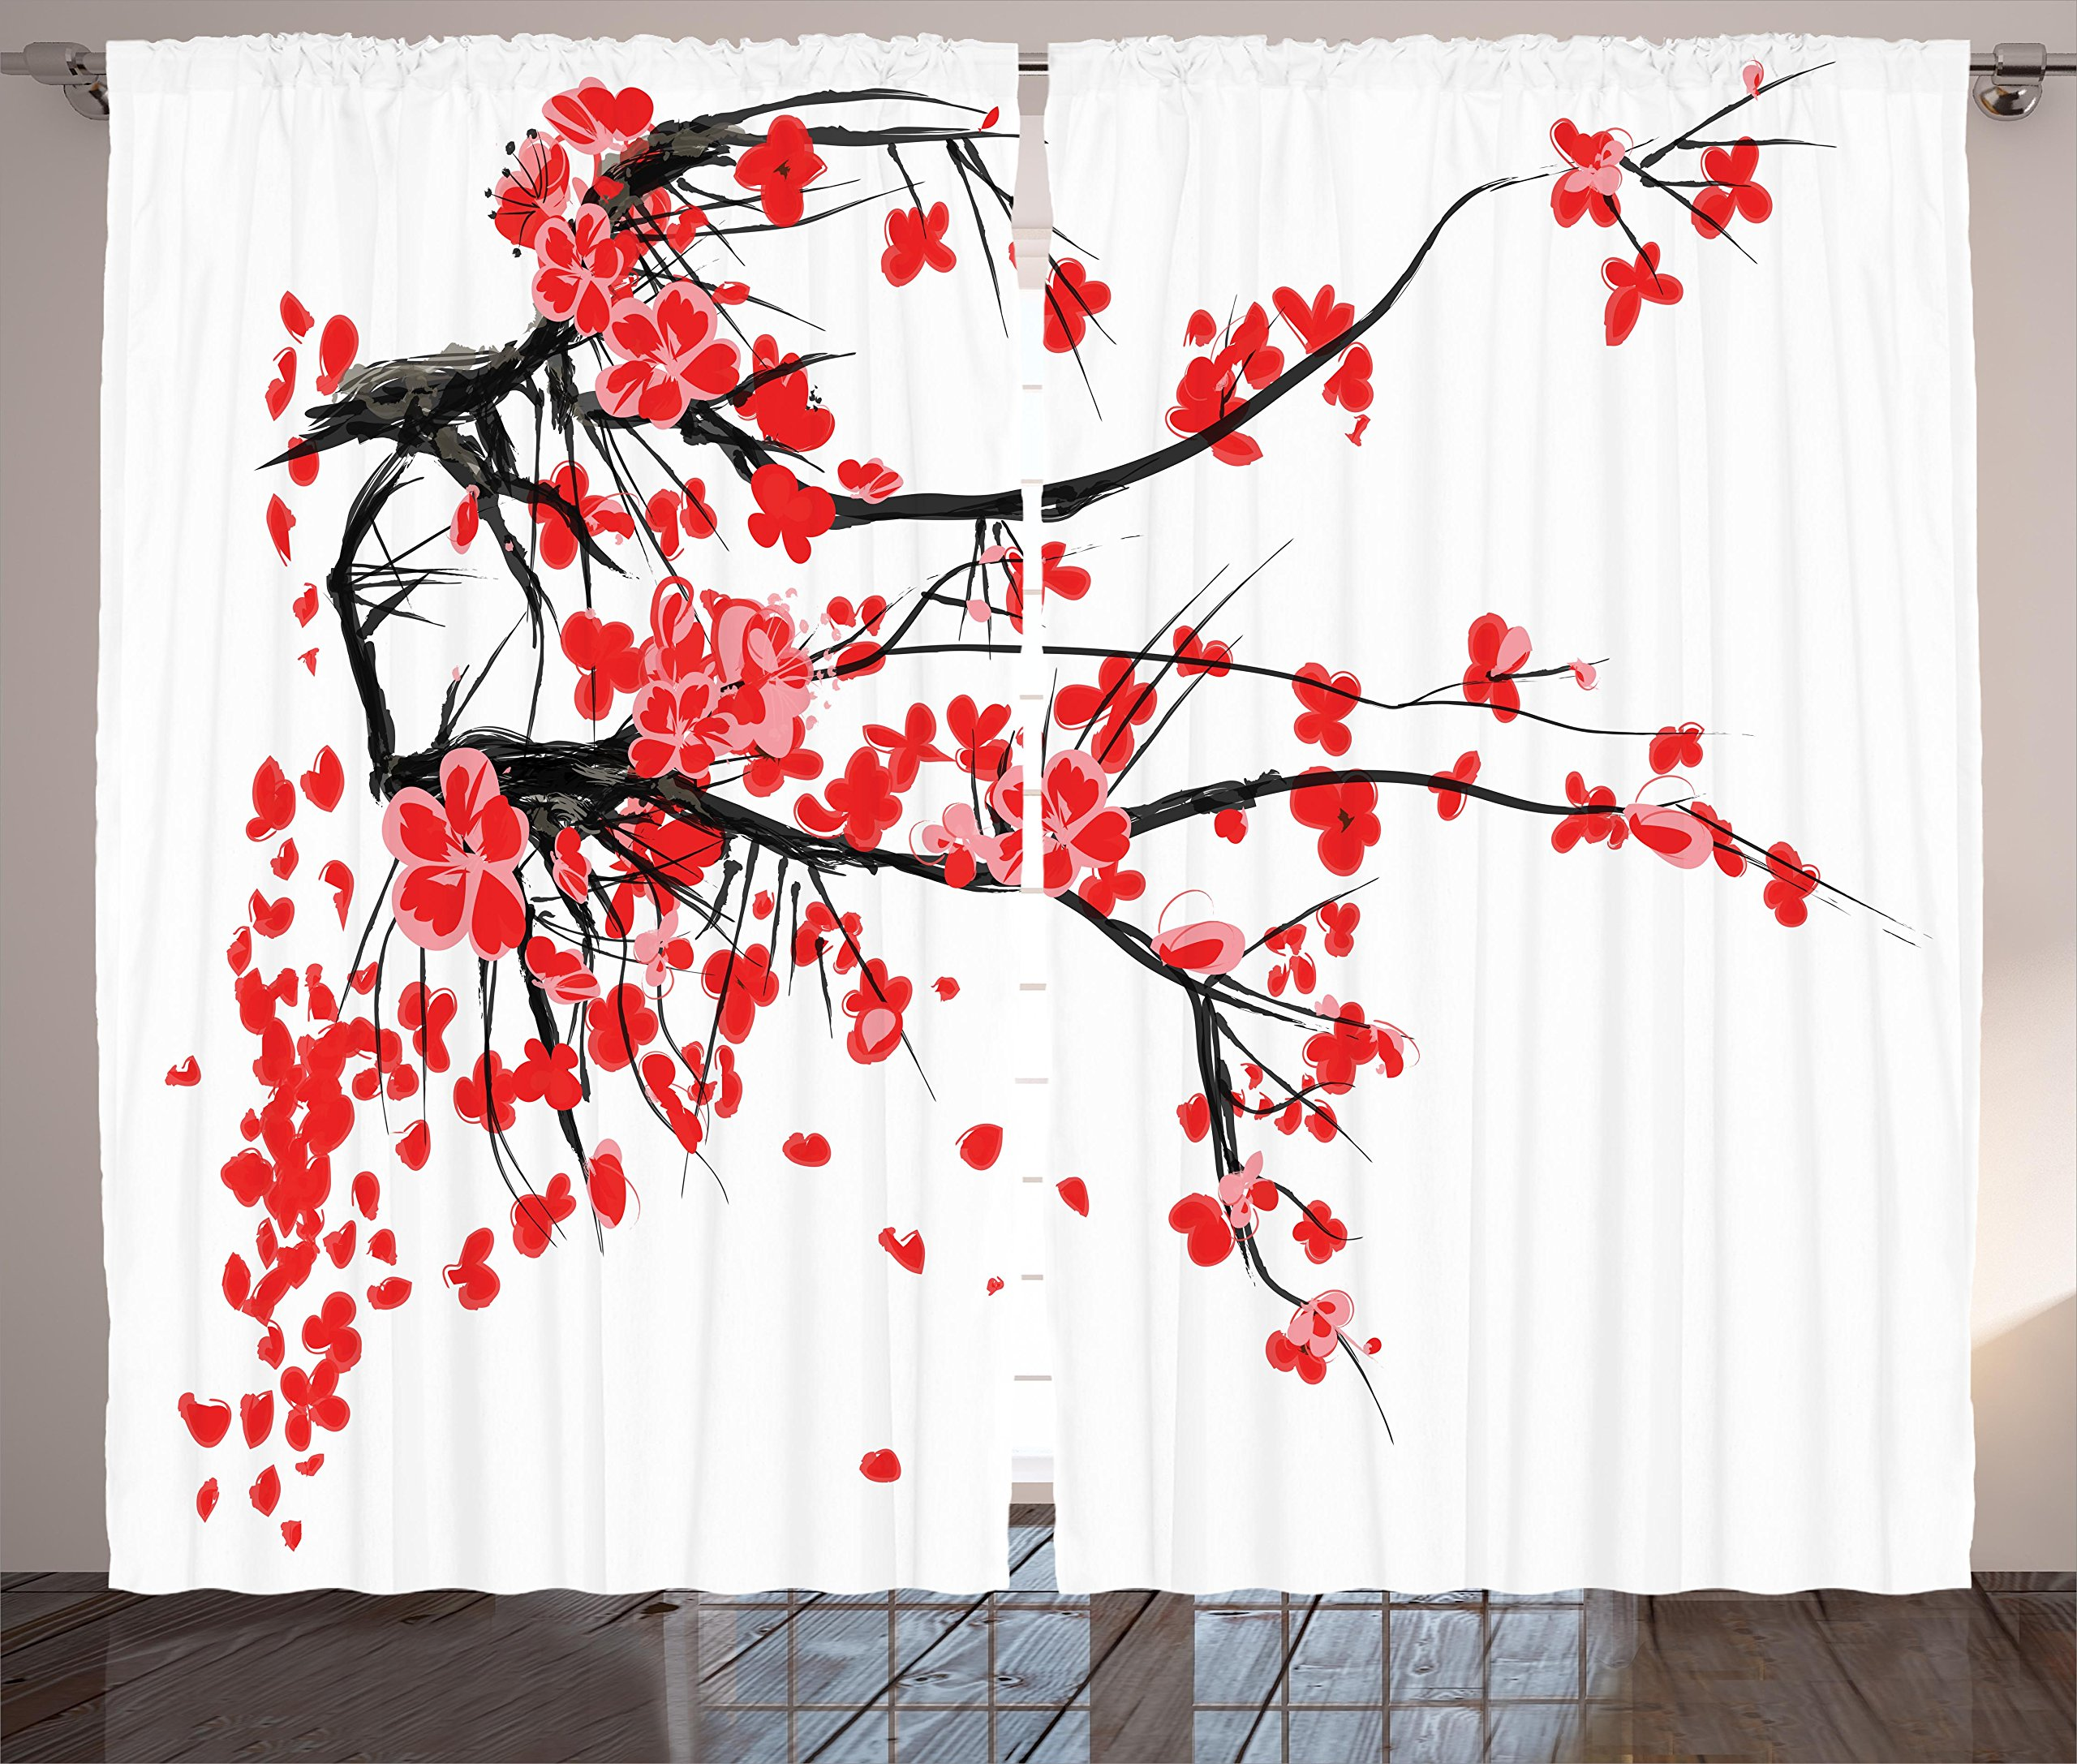 Ambesonne Floral Curtains, Japanese Cherry Blossom Sakura Blooms Branch Spring Inspirations Print, Living Room Bedroom Window Drapes 2 Panel Set, 108'' X 84'', Vermilion White by Ambesonne